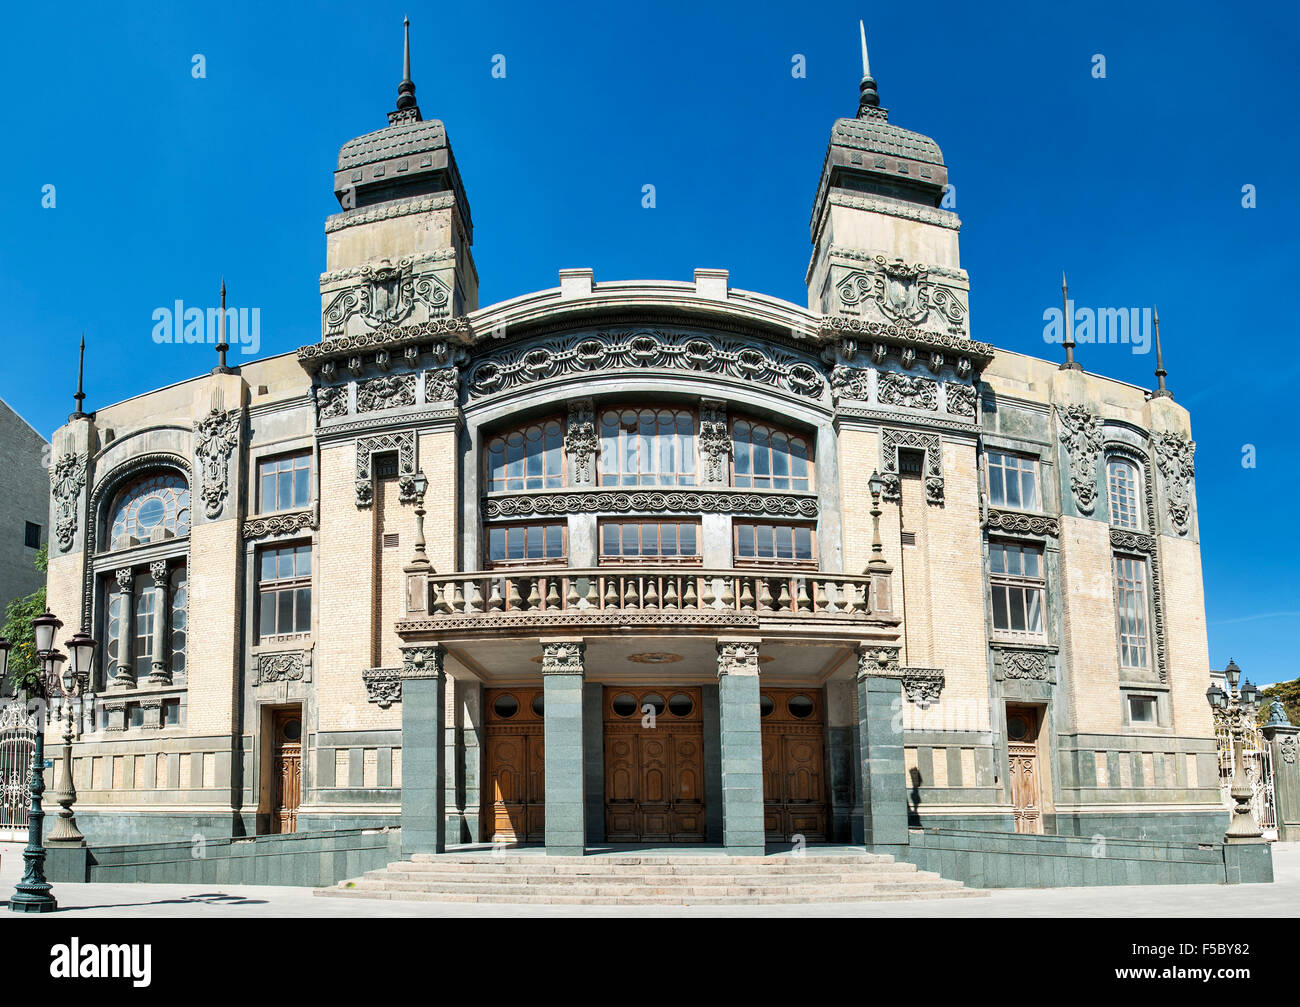 Akhundov Azerbaijan State Academic Opera and Ballet Theater in Baku. - Stock Image